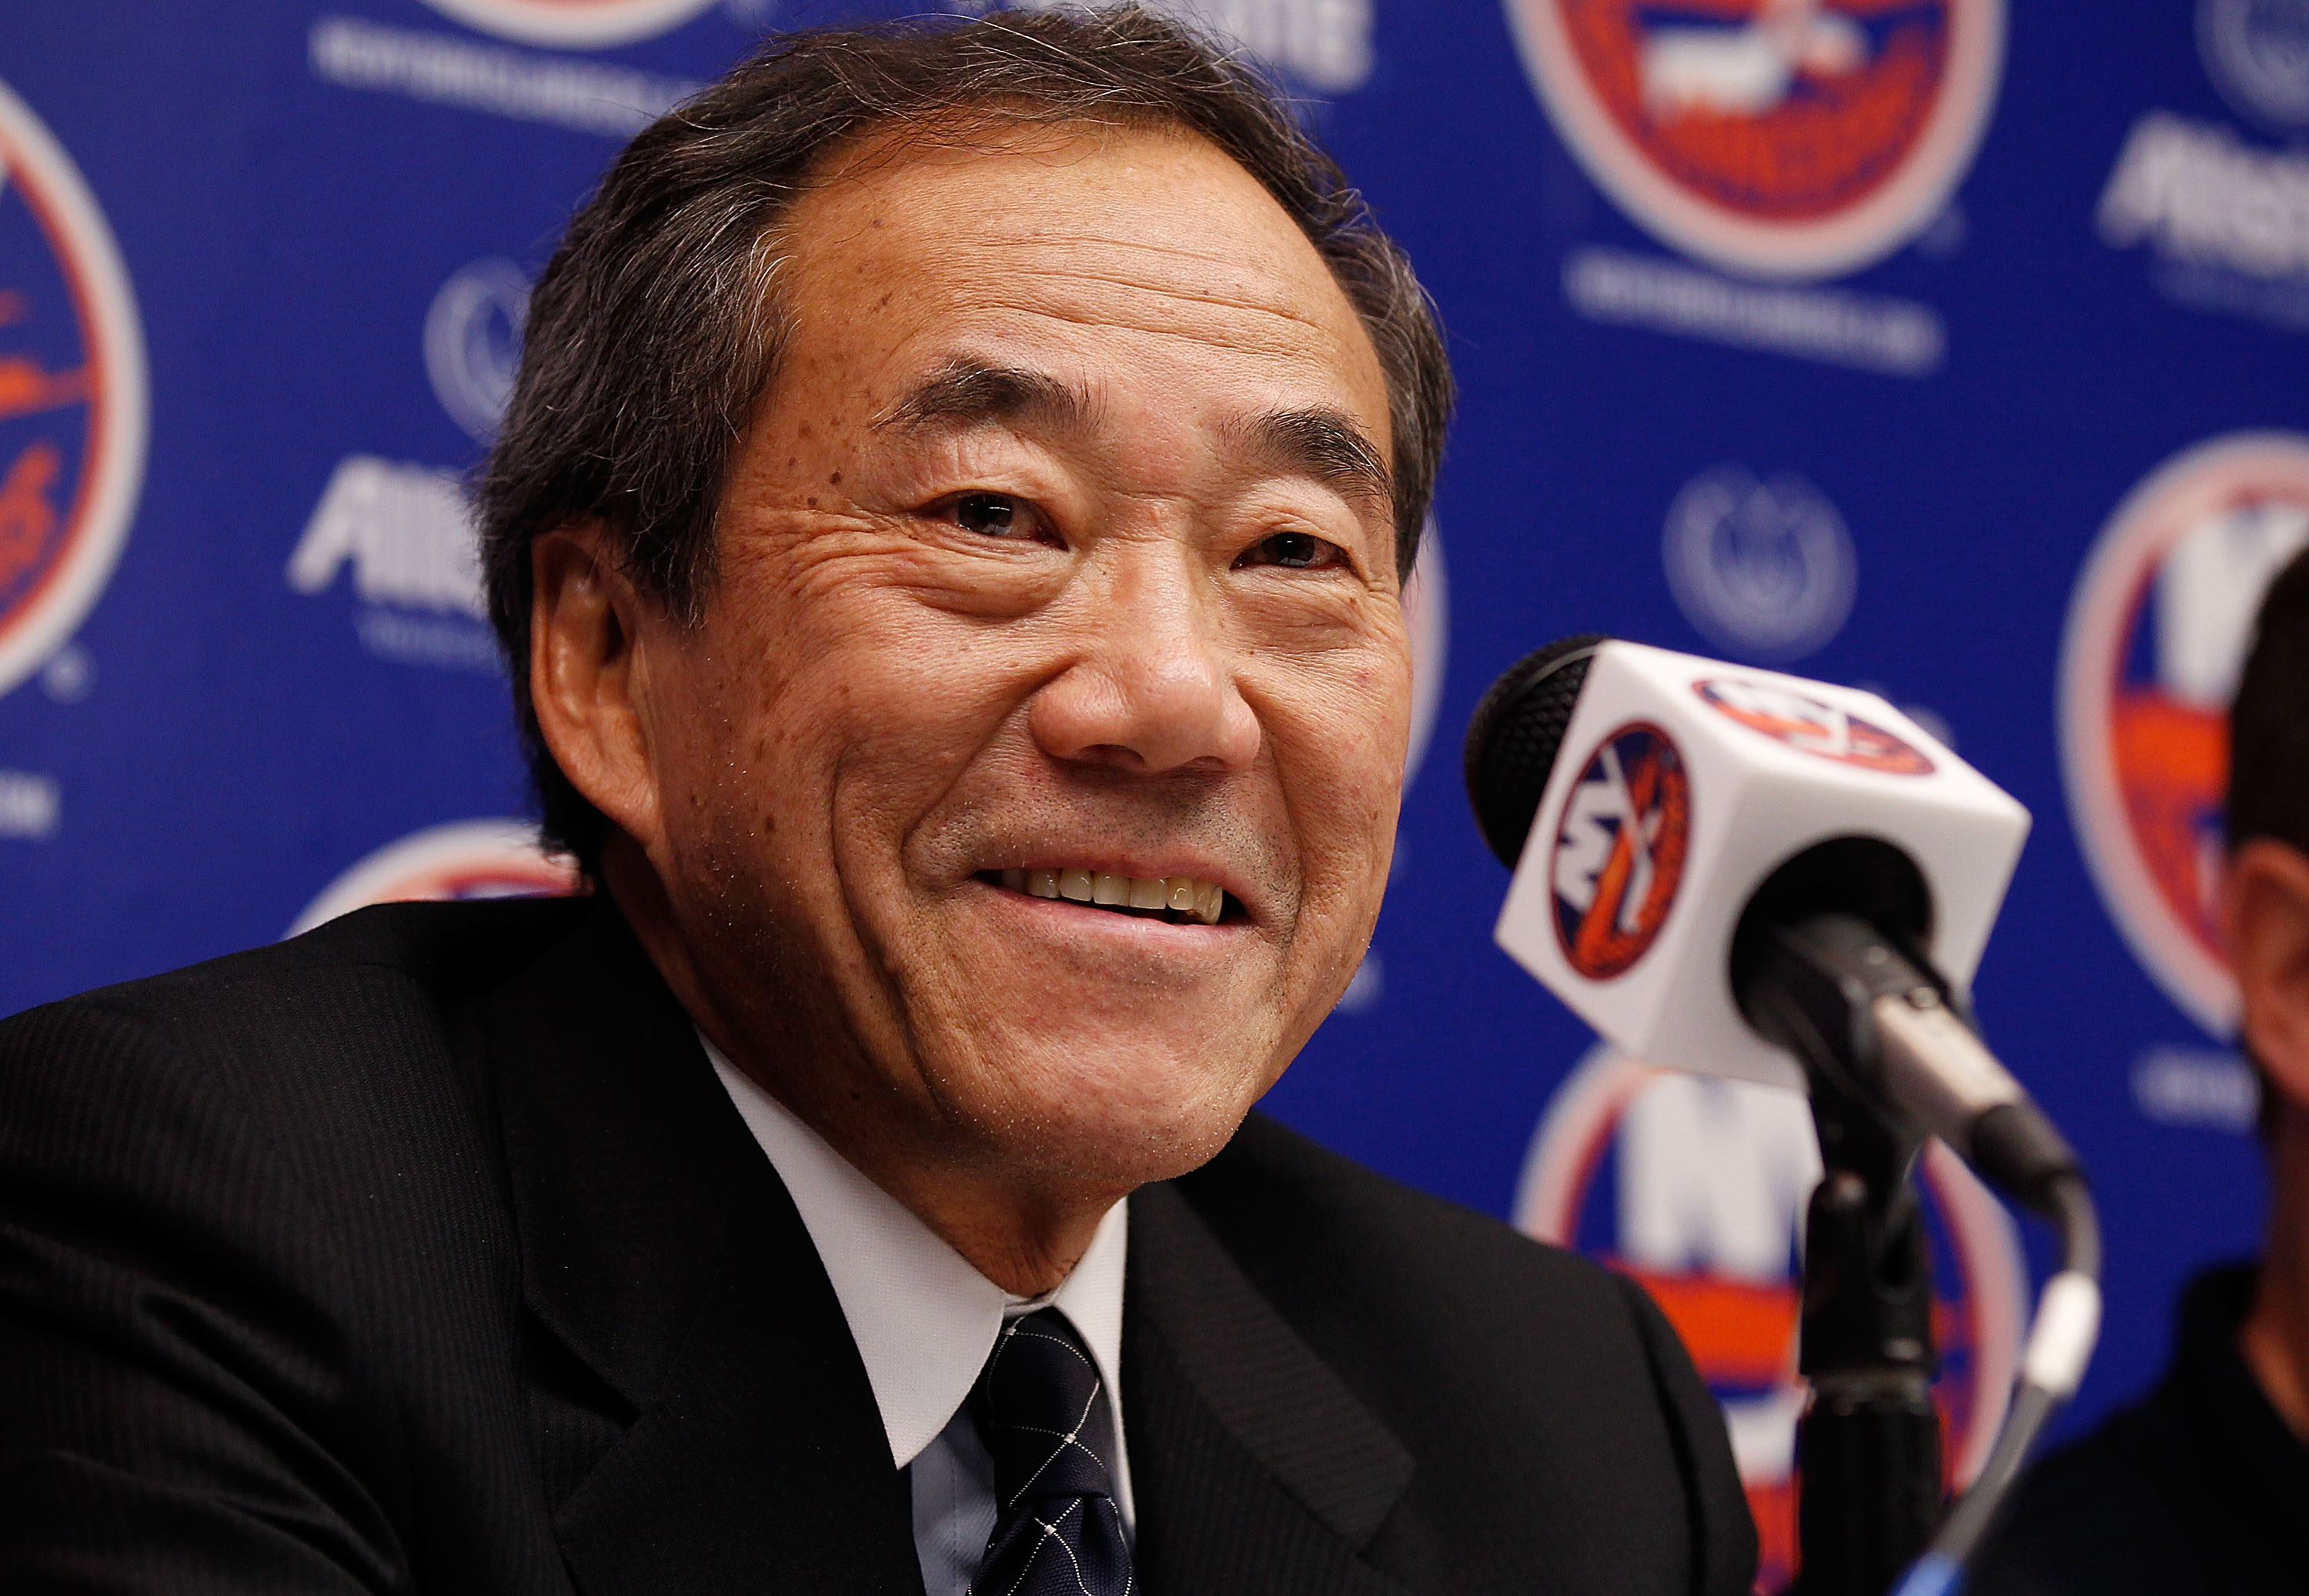 UNIONDALE, NY - SEPTEMBER 21:  New York Islanders Owner Charles Wang speaks to the media on September 21, 2010 at Nassau Coliseum in Uniondale.  (Photo by Mike Stobe/Getty Images)